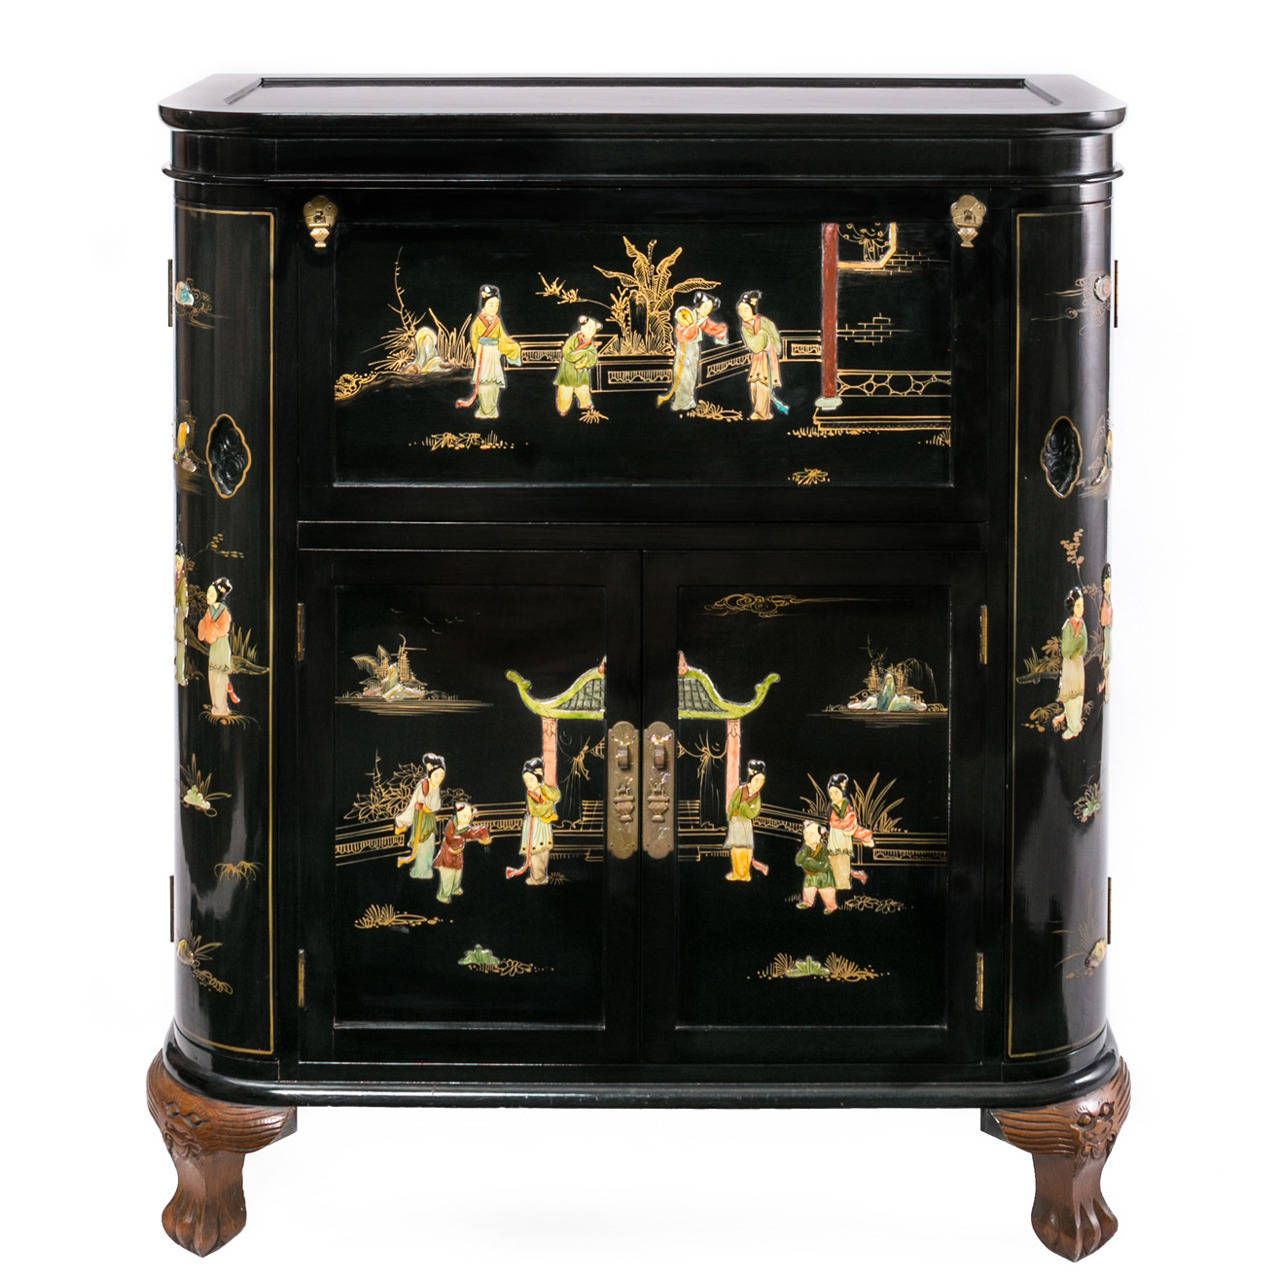 Regency Black Lacquer Chinoiserie Claw Foot Drinking Cabinet - Regency Black Lacquer Chinoiserie Claw Foot Drinking Cabinet